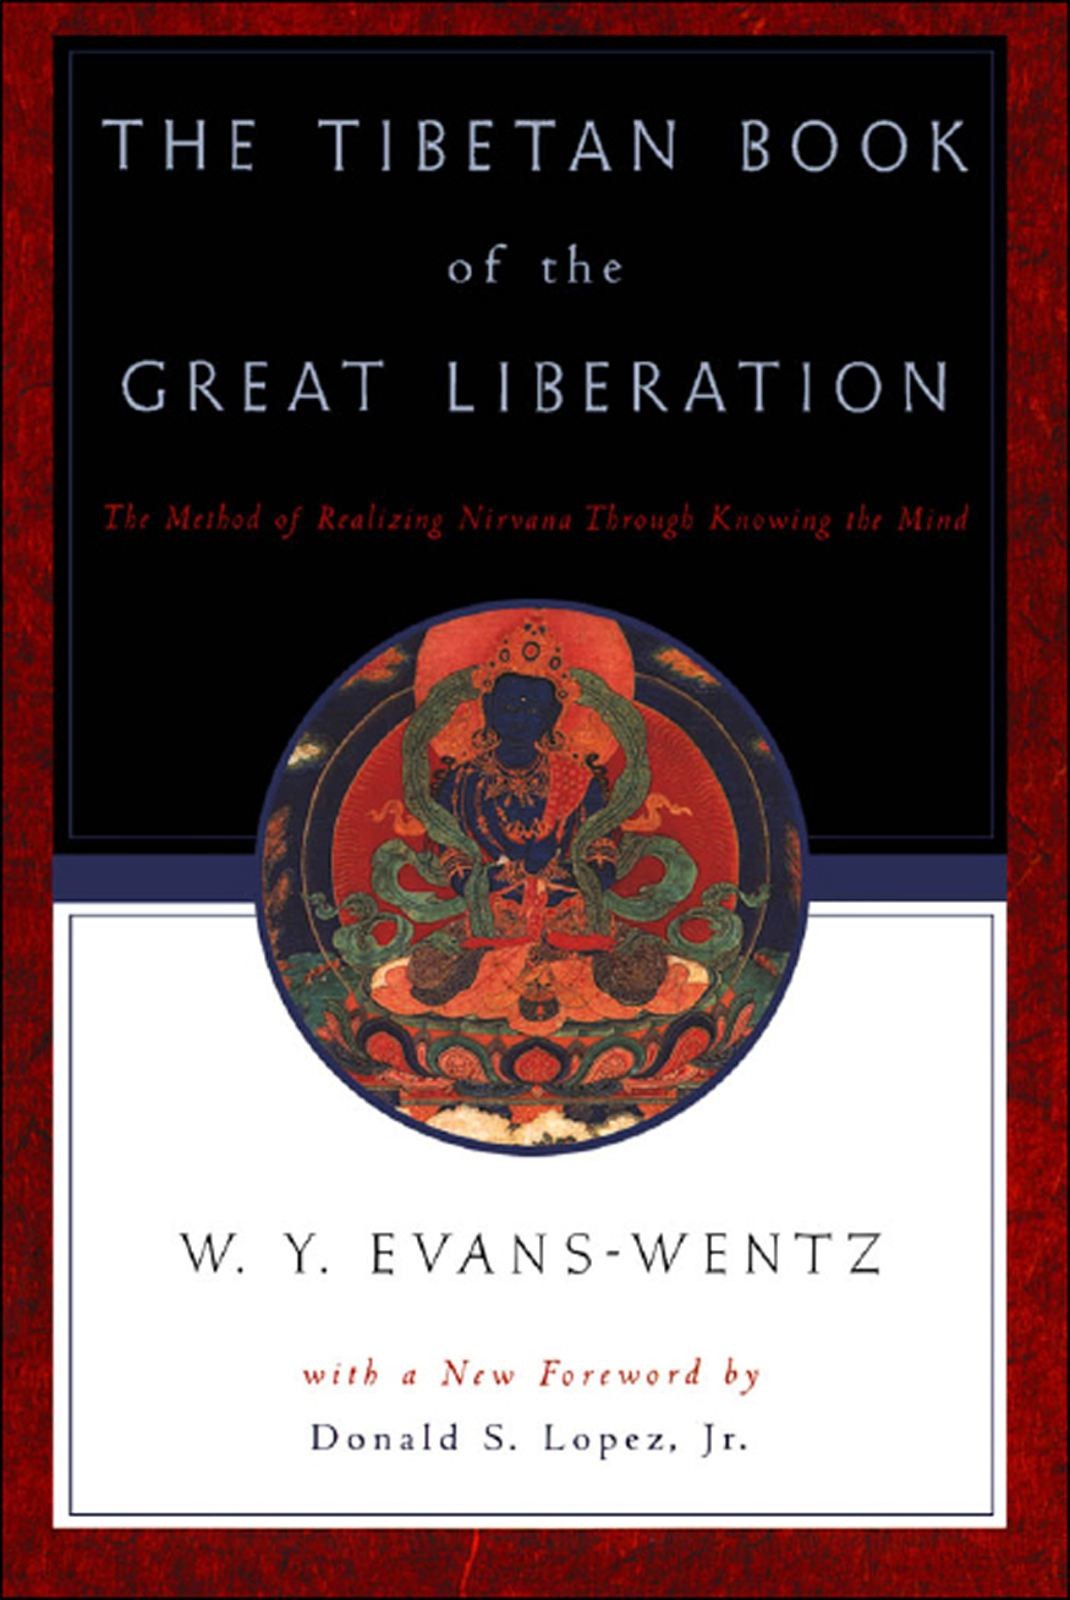 The Tibetan Book of the Great Liberation : Or the Method of Realizing Nirvana through Knowing the Mind By: W. Y. Evans-Wentz;C. G. Jung;Donald S. Lopez